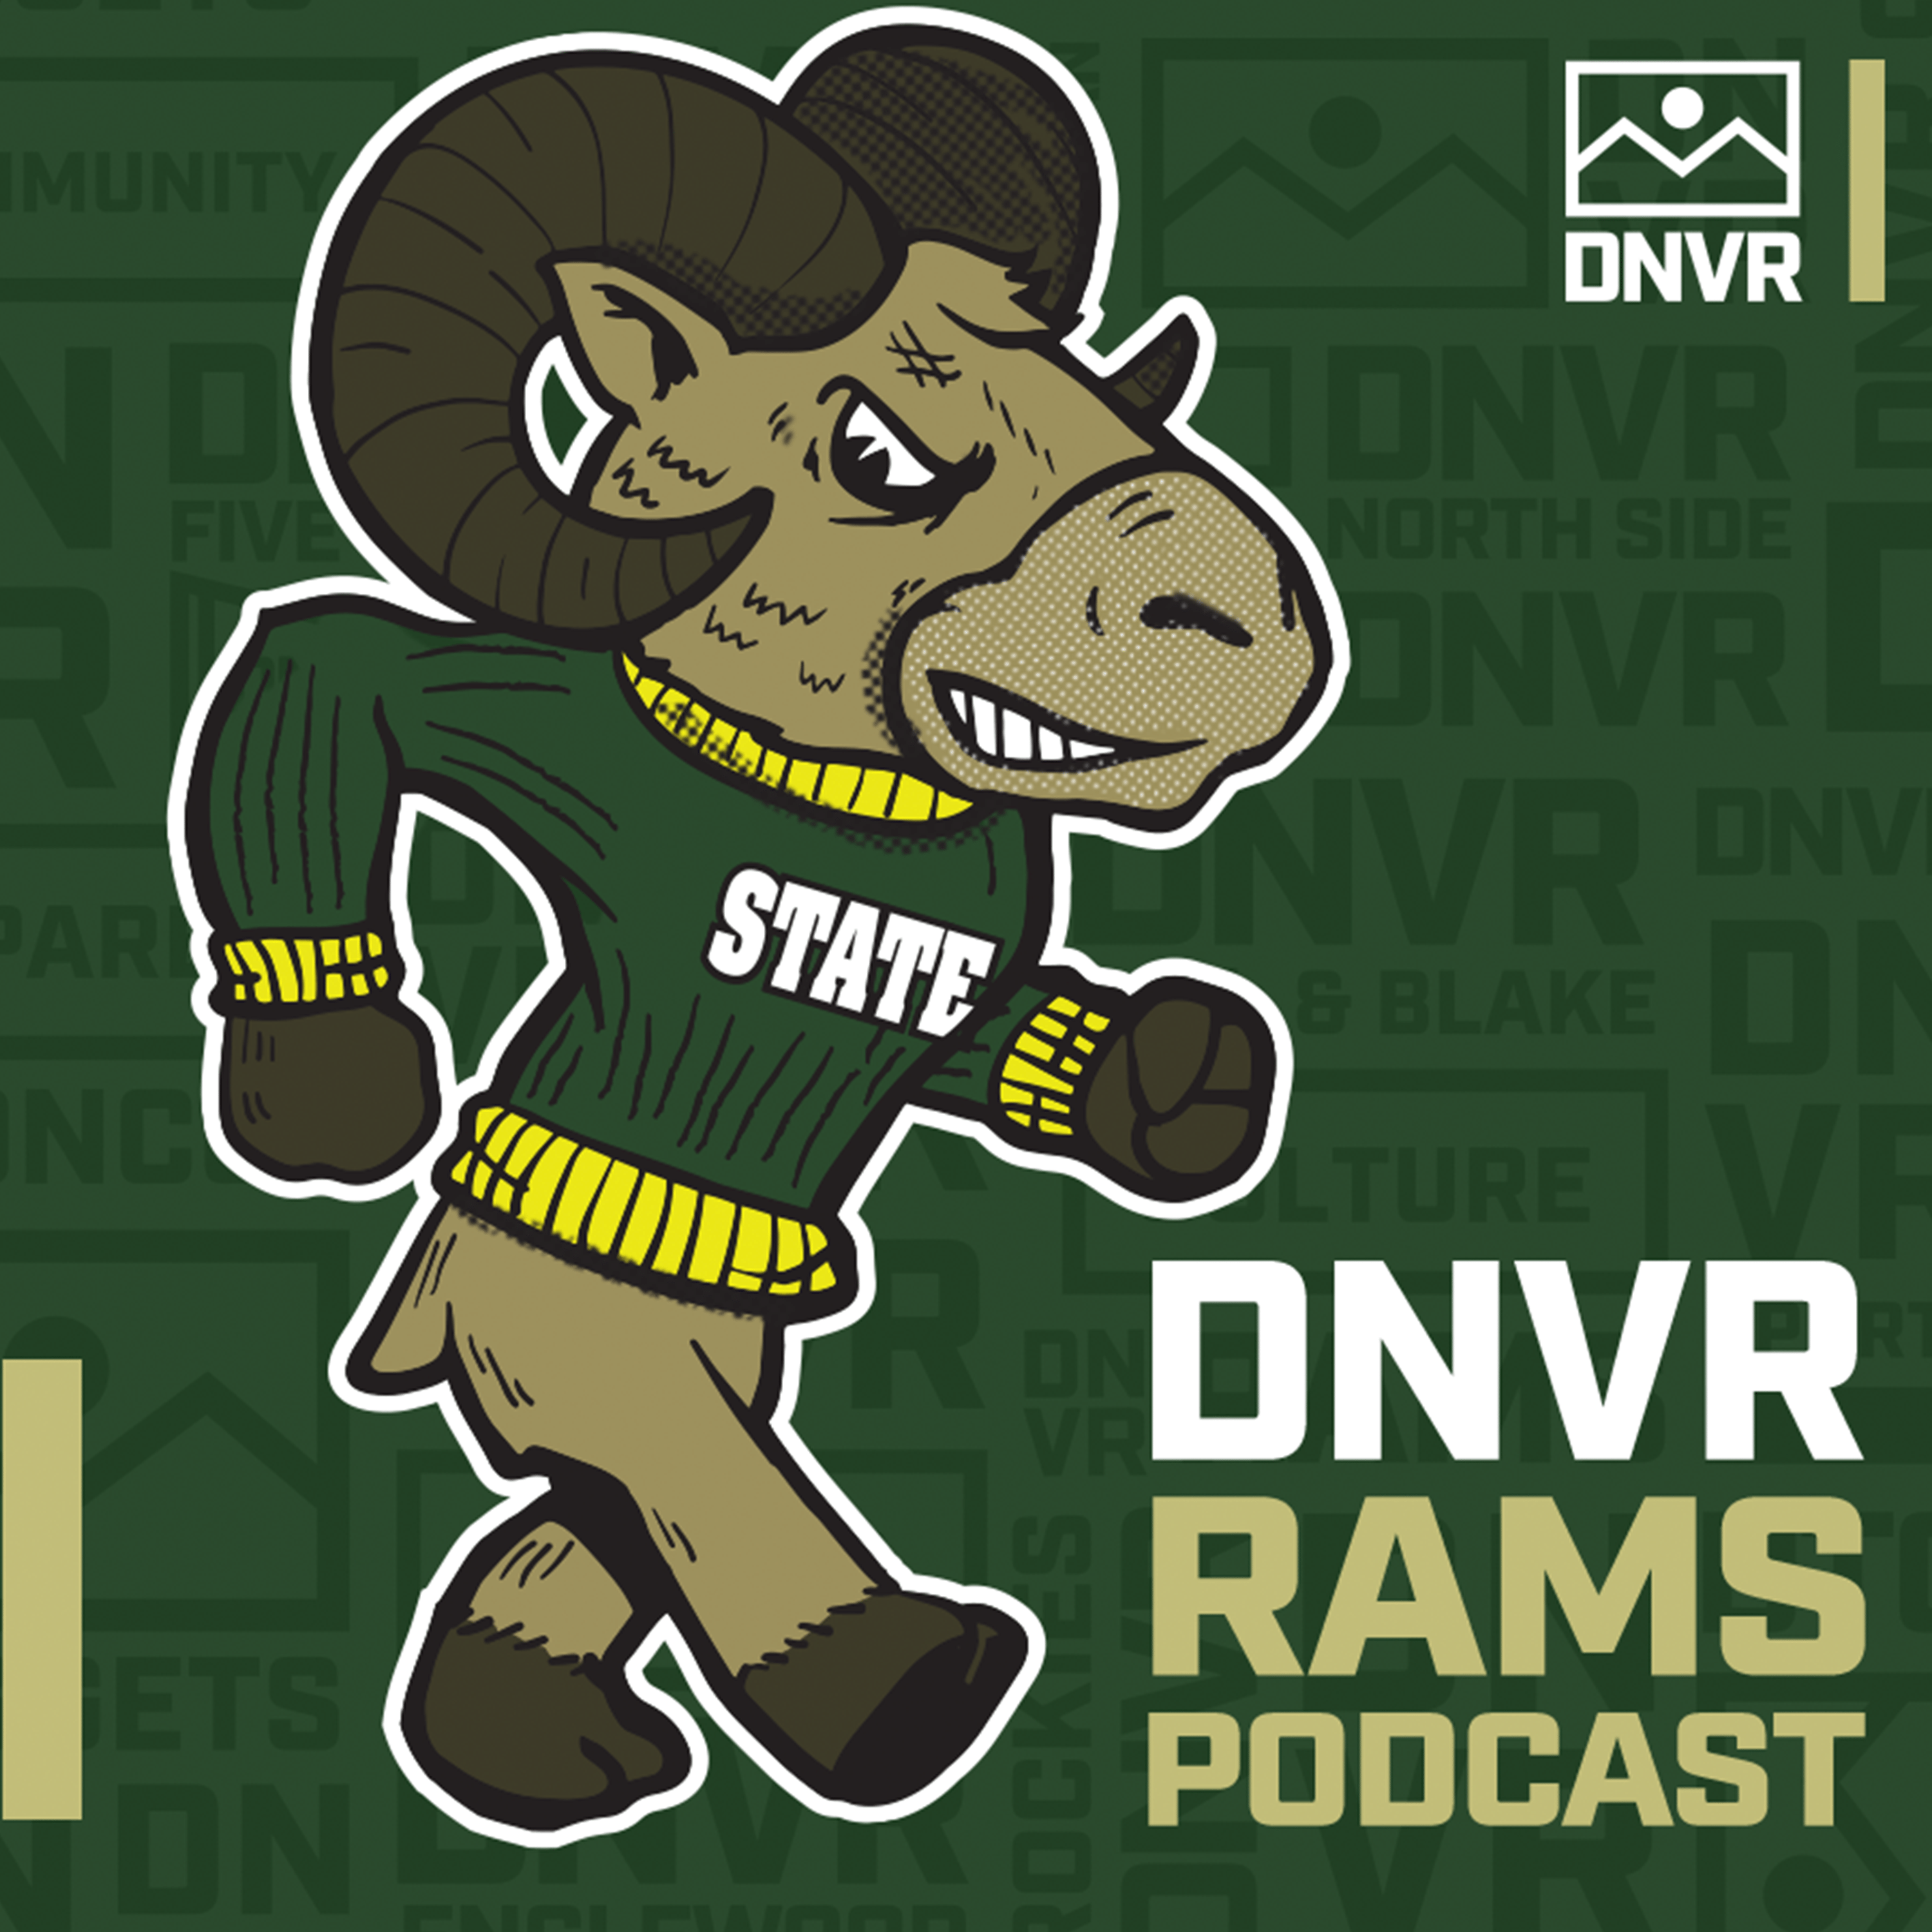 Dnvr Rams Podcast Can Michael Gallup Build Off His Monster Performance Against The Seahawks